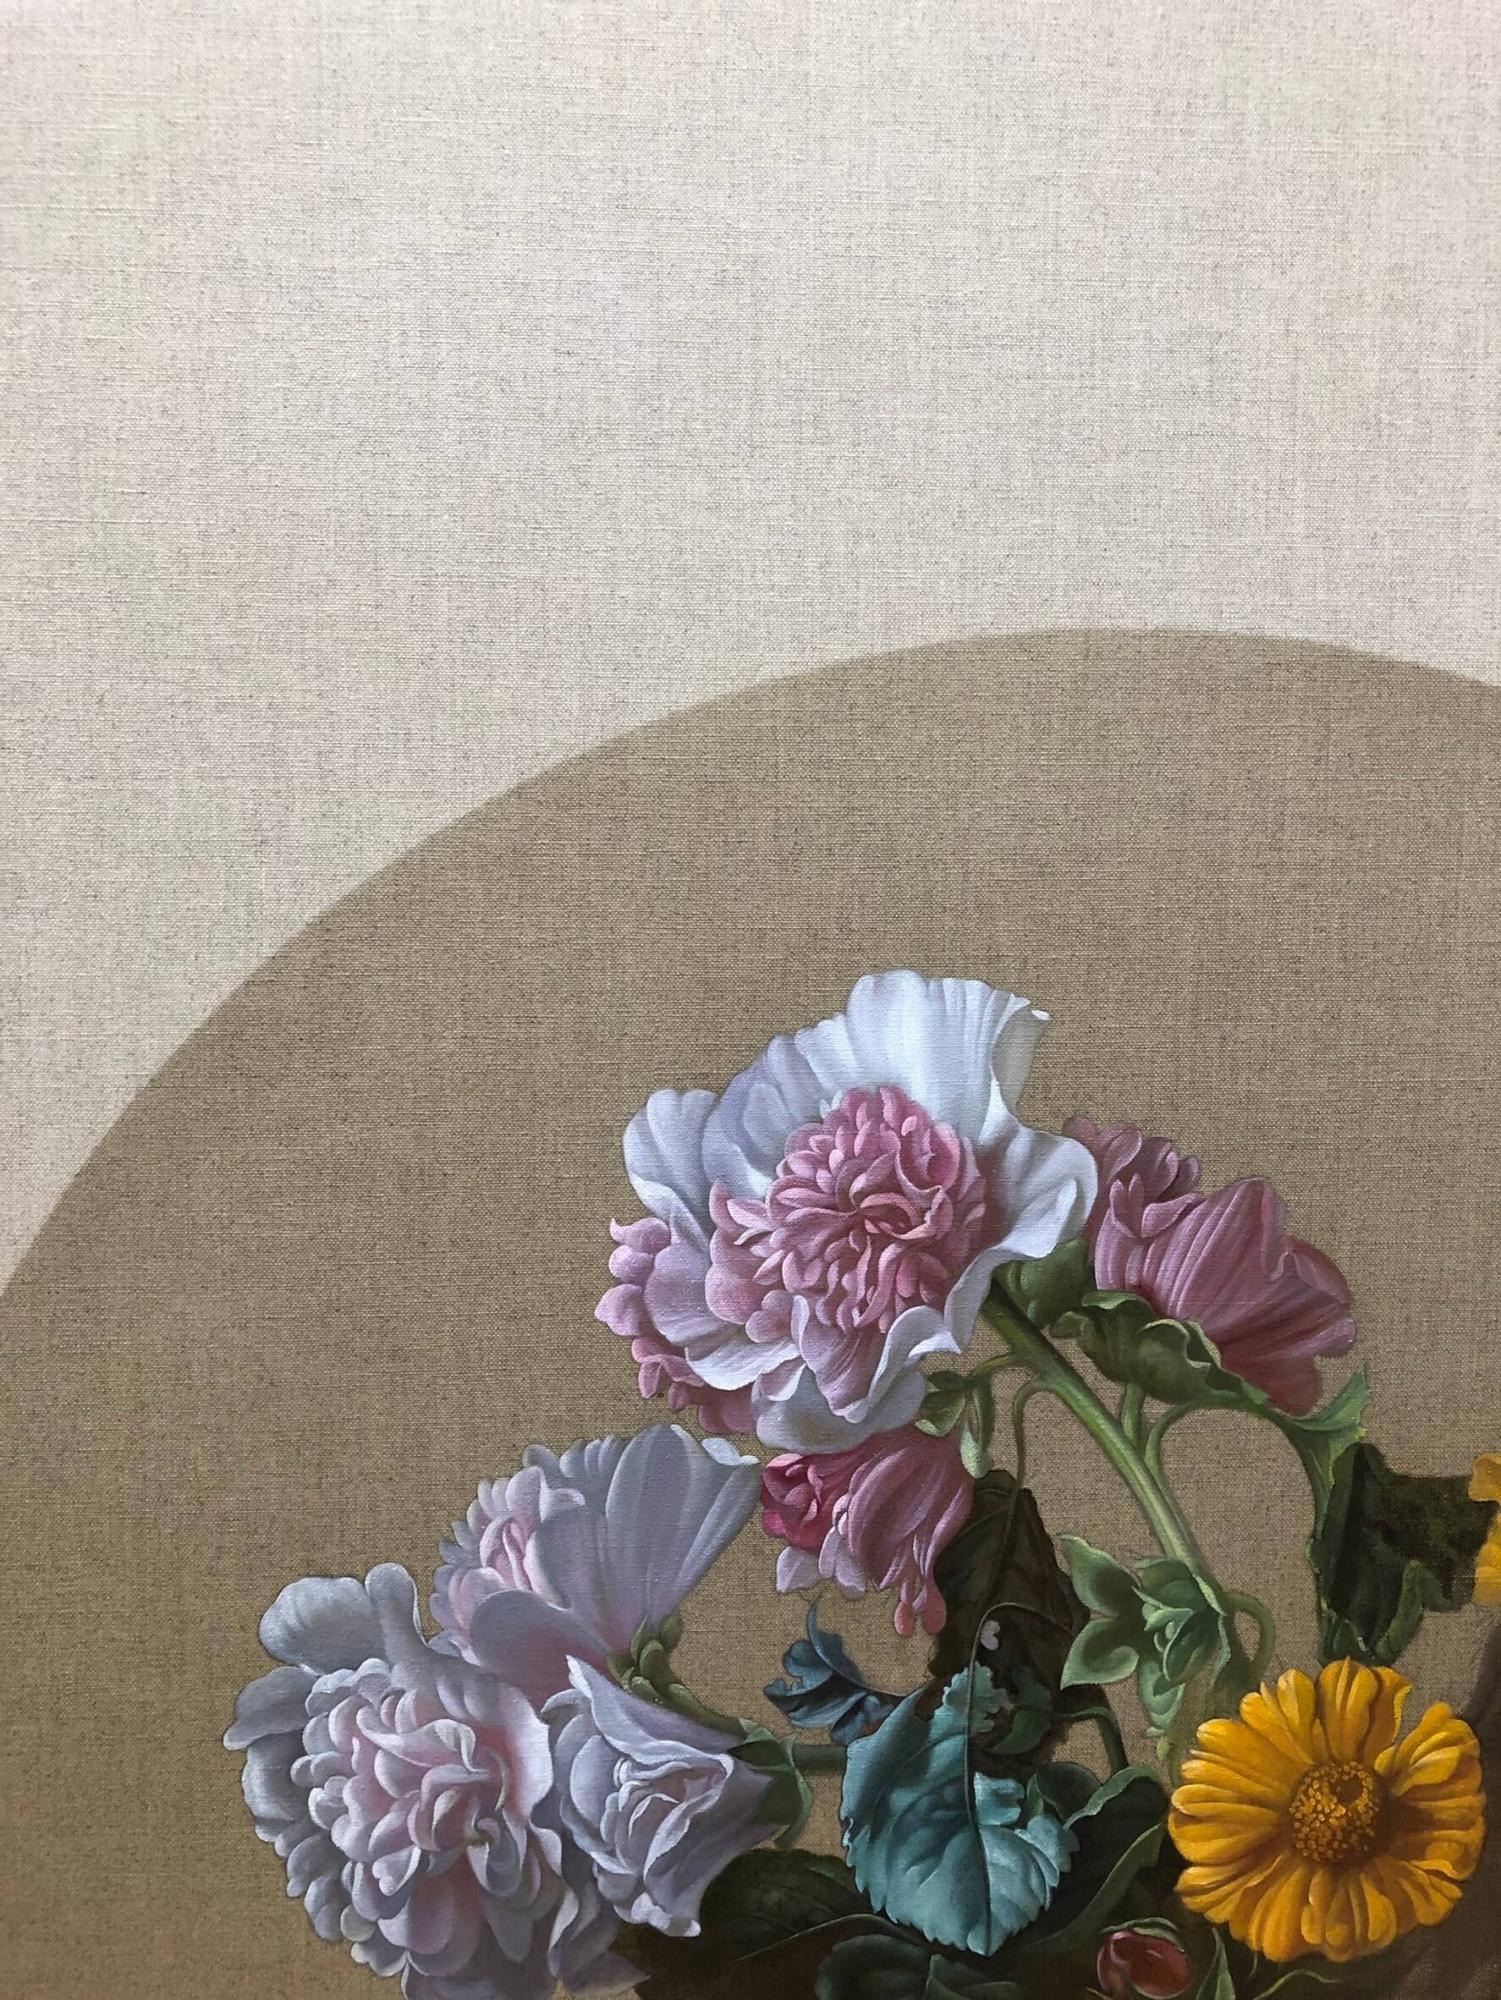 The Imperial Embassies to Tang Dynasty: Still Life I 遣唐使靜物(二) LU Fang 盧昉 (Taiwan, 1977-) Oil on Canvas 油彩、畫布 70 x 50 cm 2019